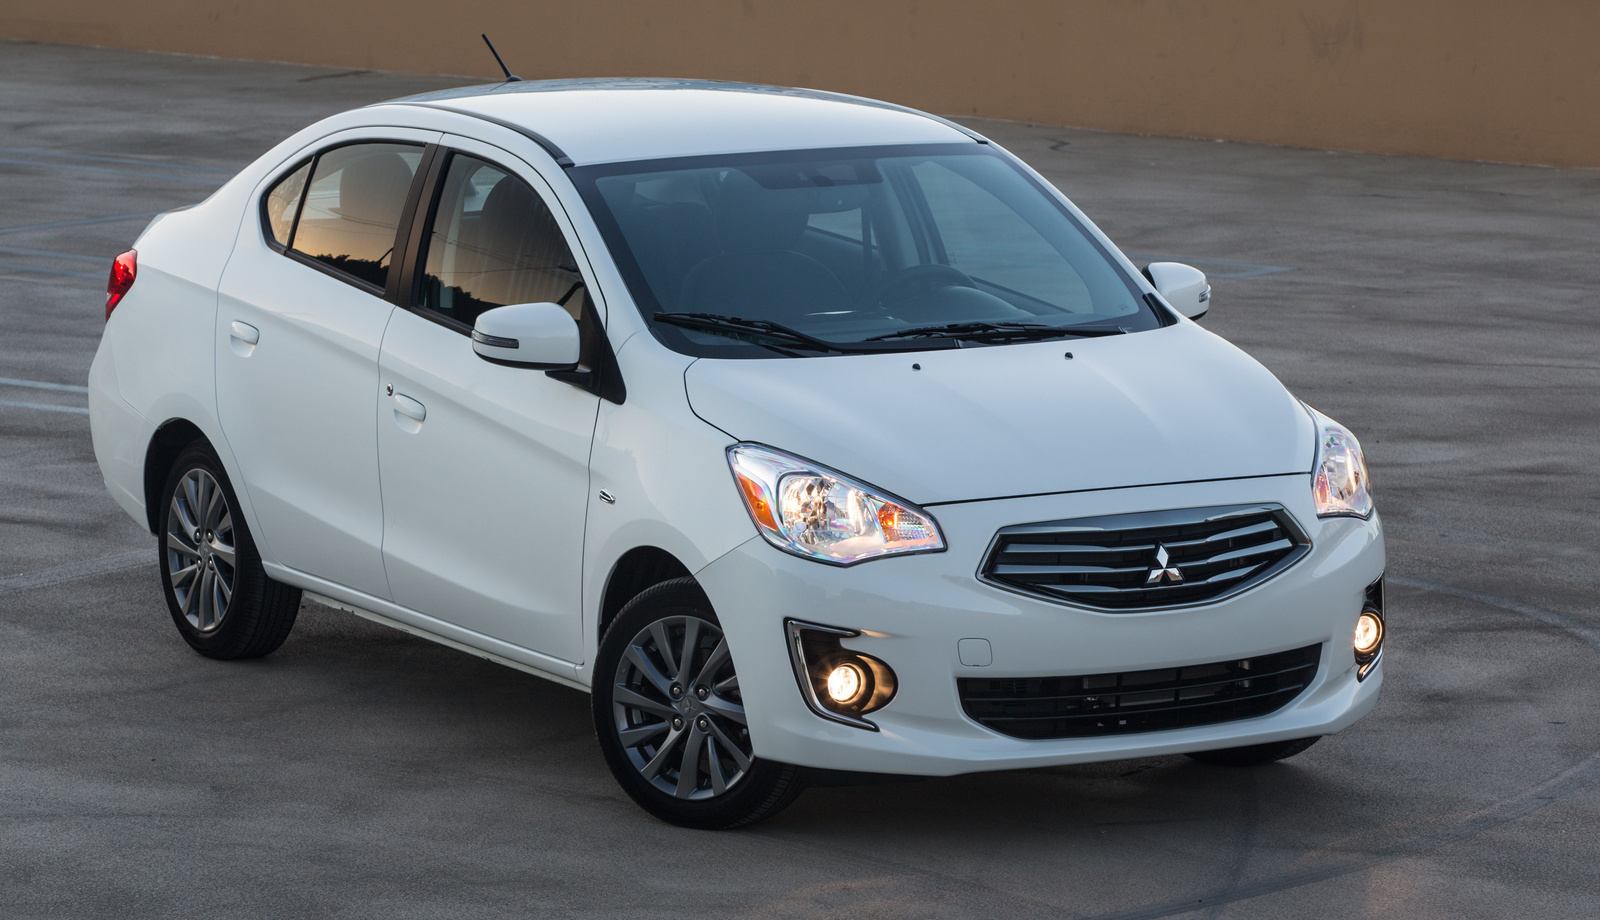 2017 mitsubishi mirage g4 for sale in provo ut cargurus. Black Bedroom Furniture Sets. Home Design Ideas